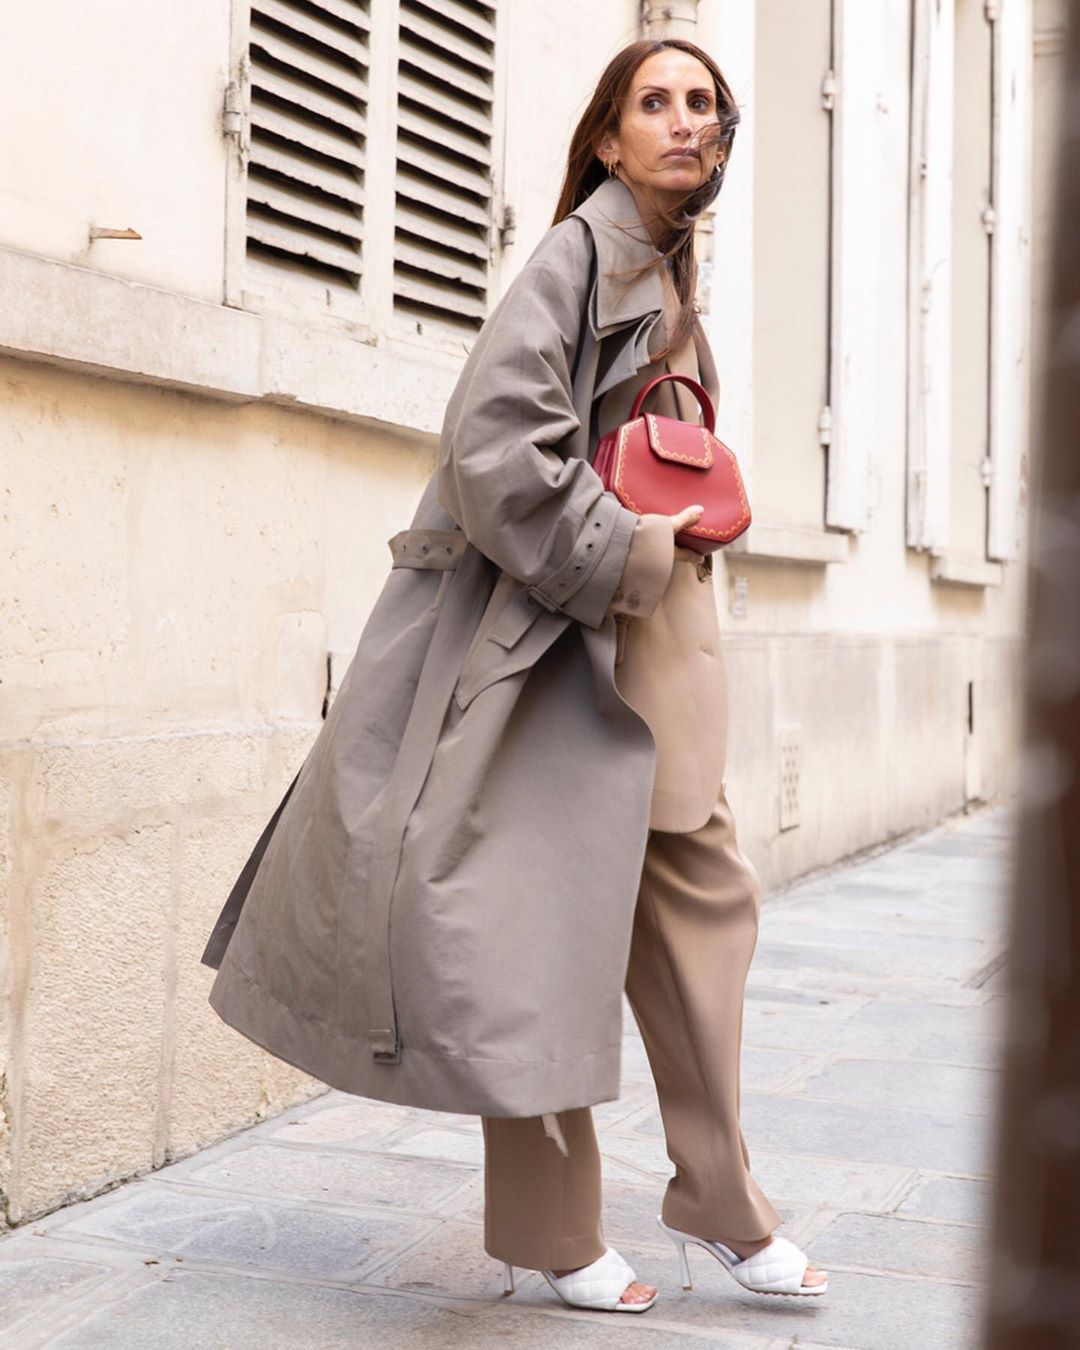 trench-over-suit-loulou-de-saison-instagram